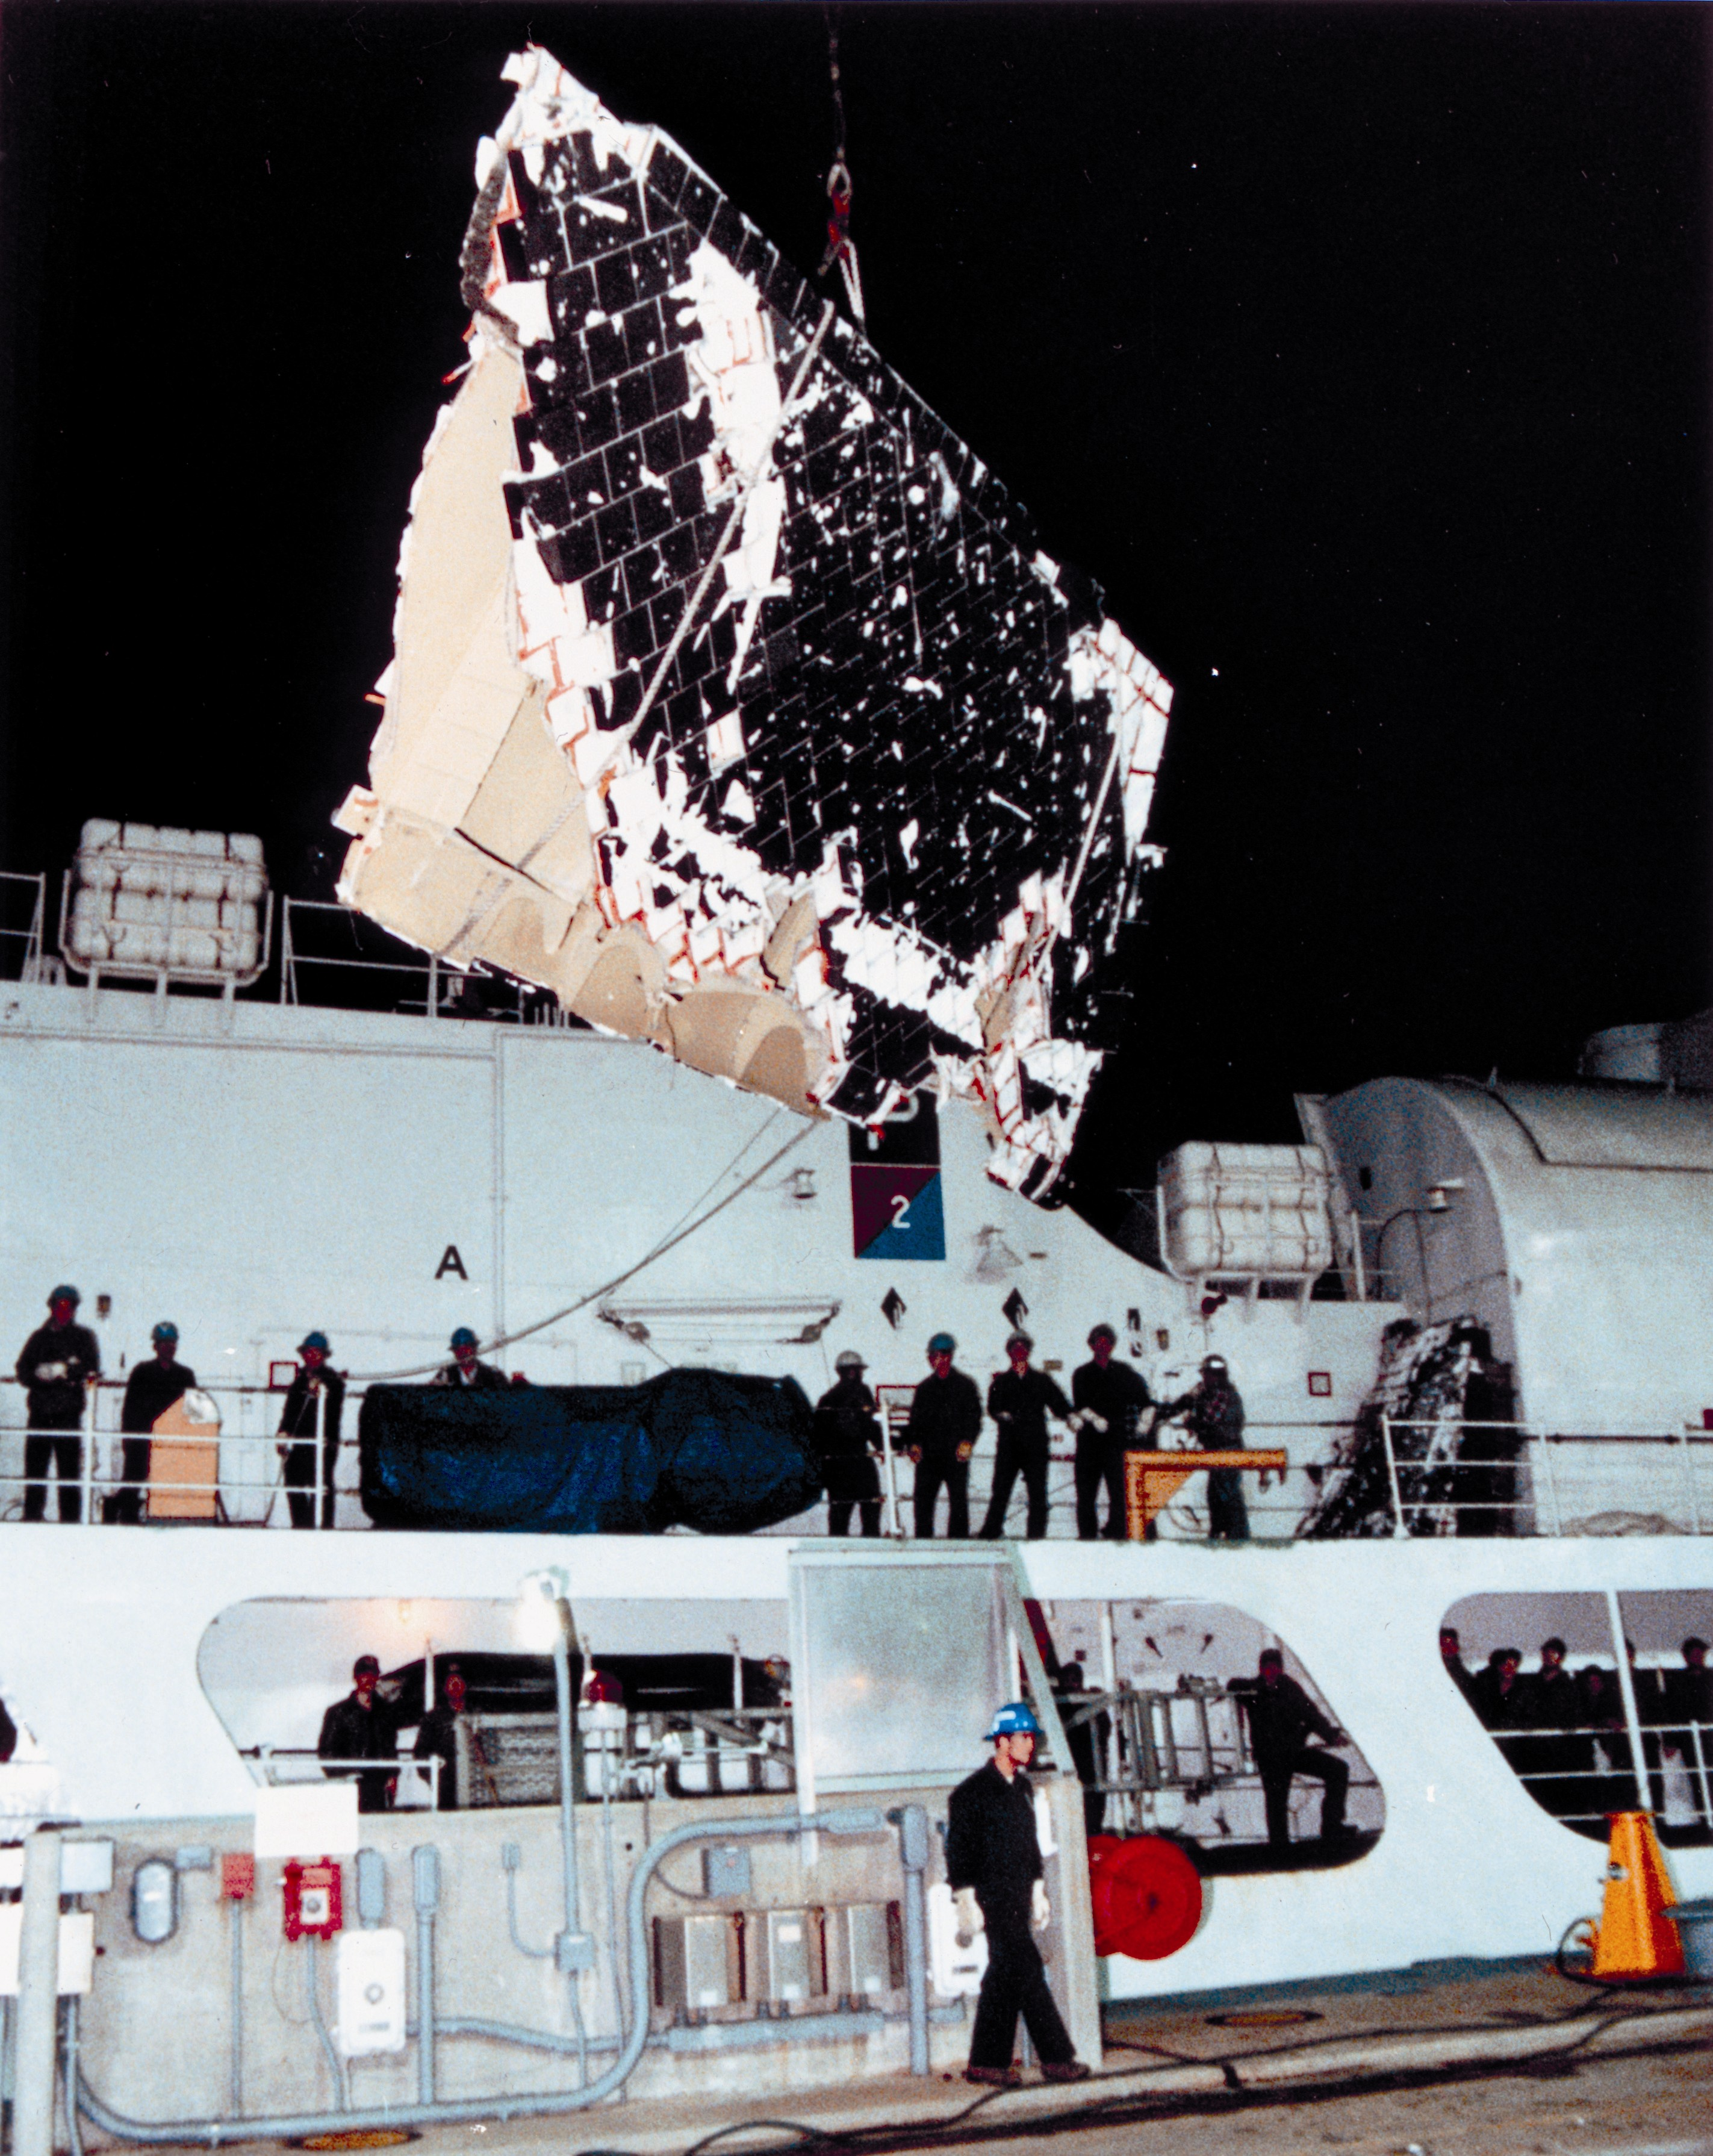 space shuttle challenger wreckage - photo #10